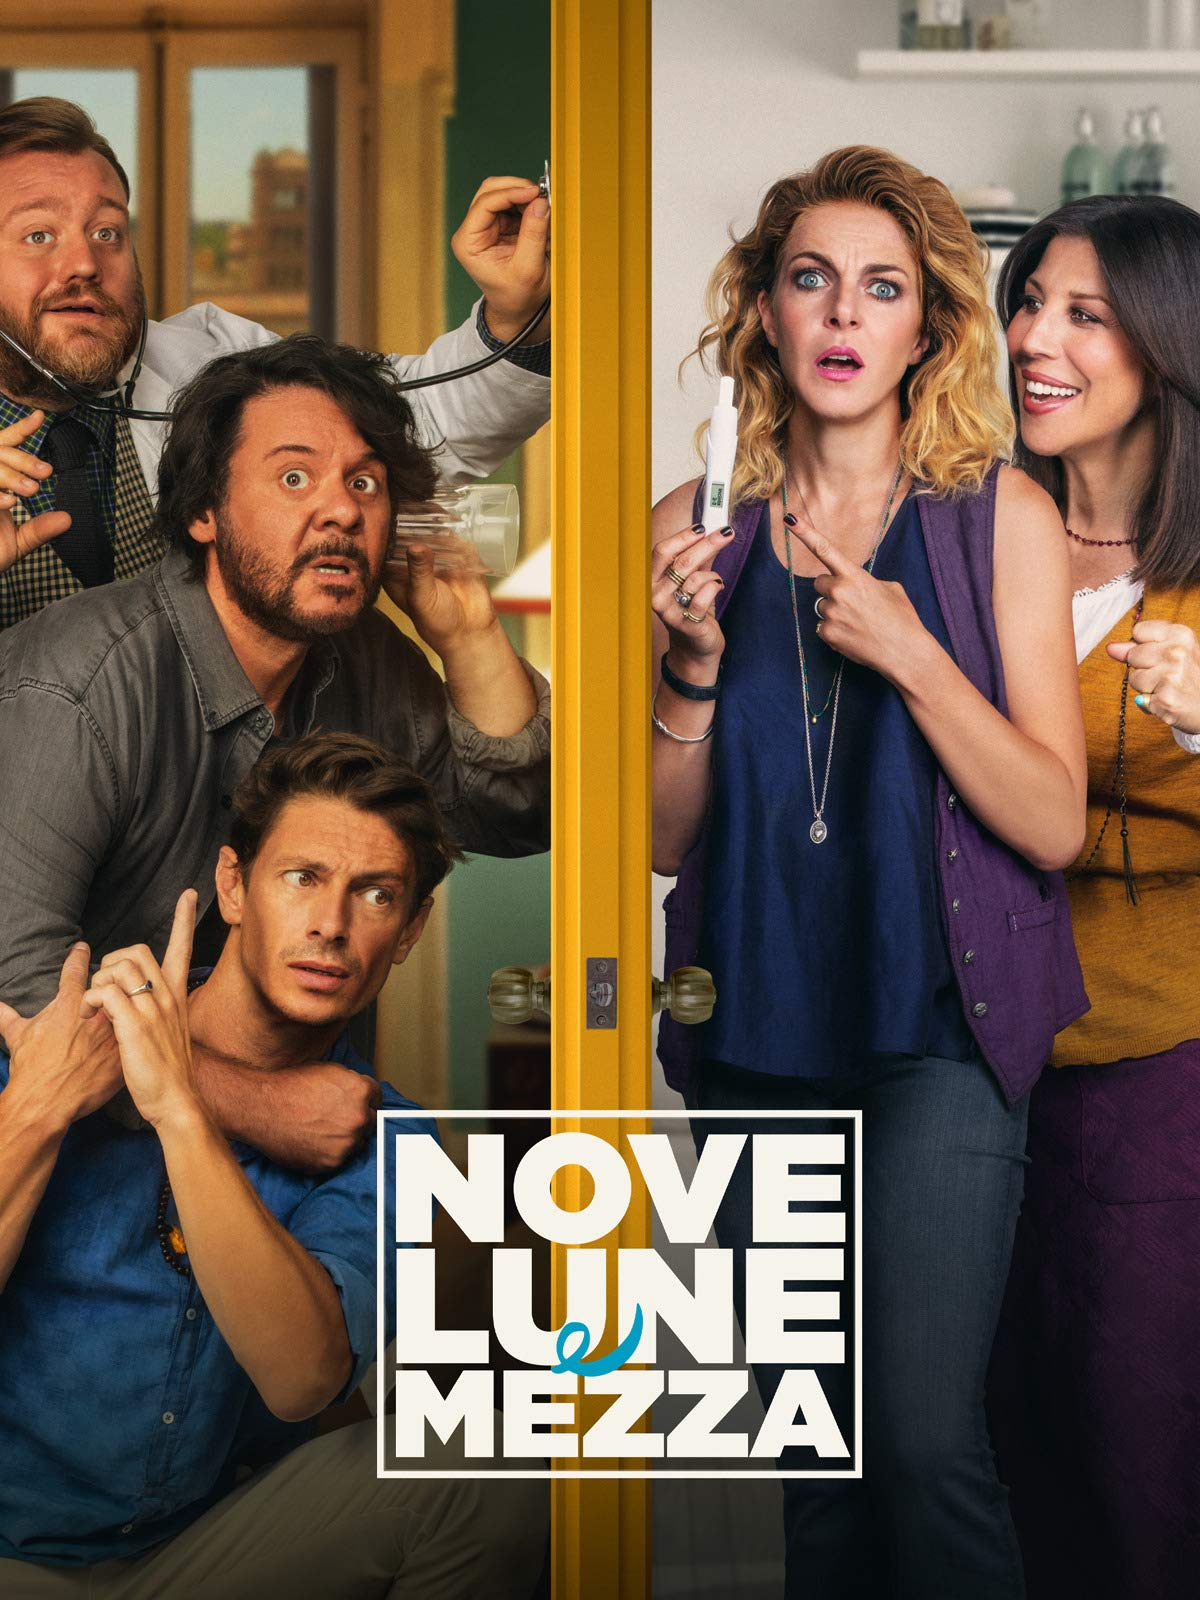 Nove lune e mezzo on Amazon Prime Instant Video UK